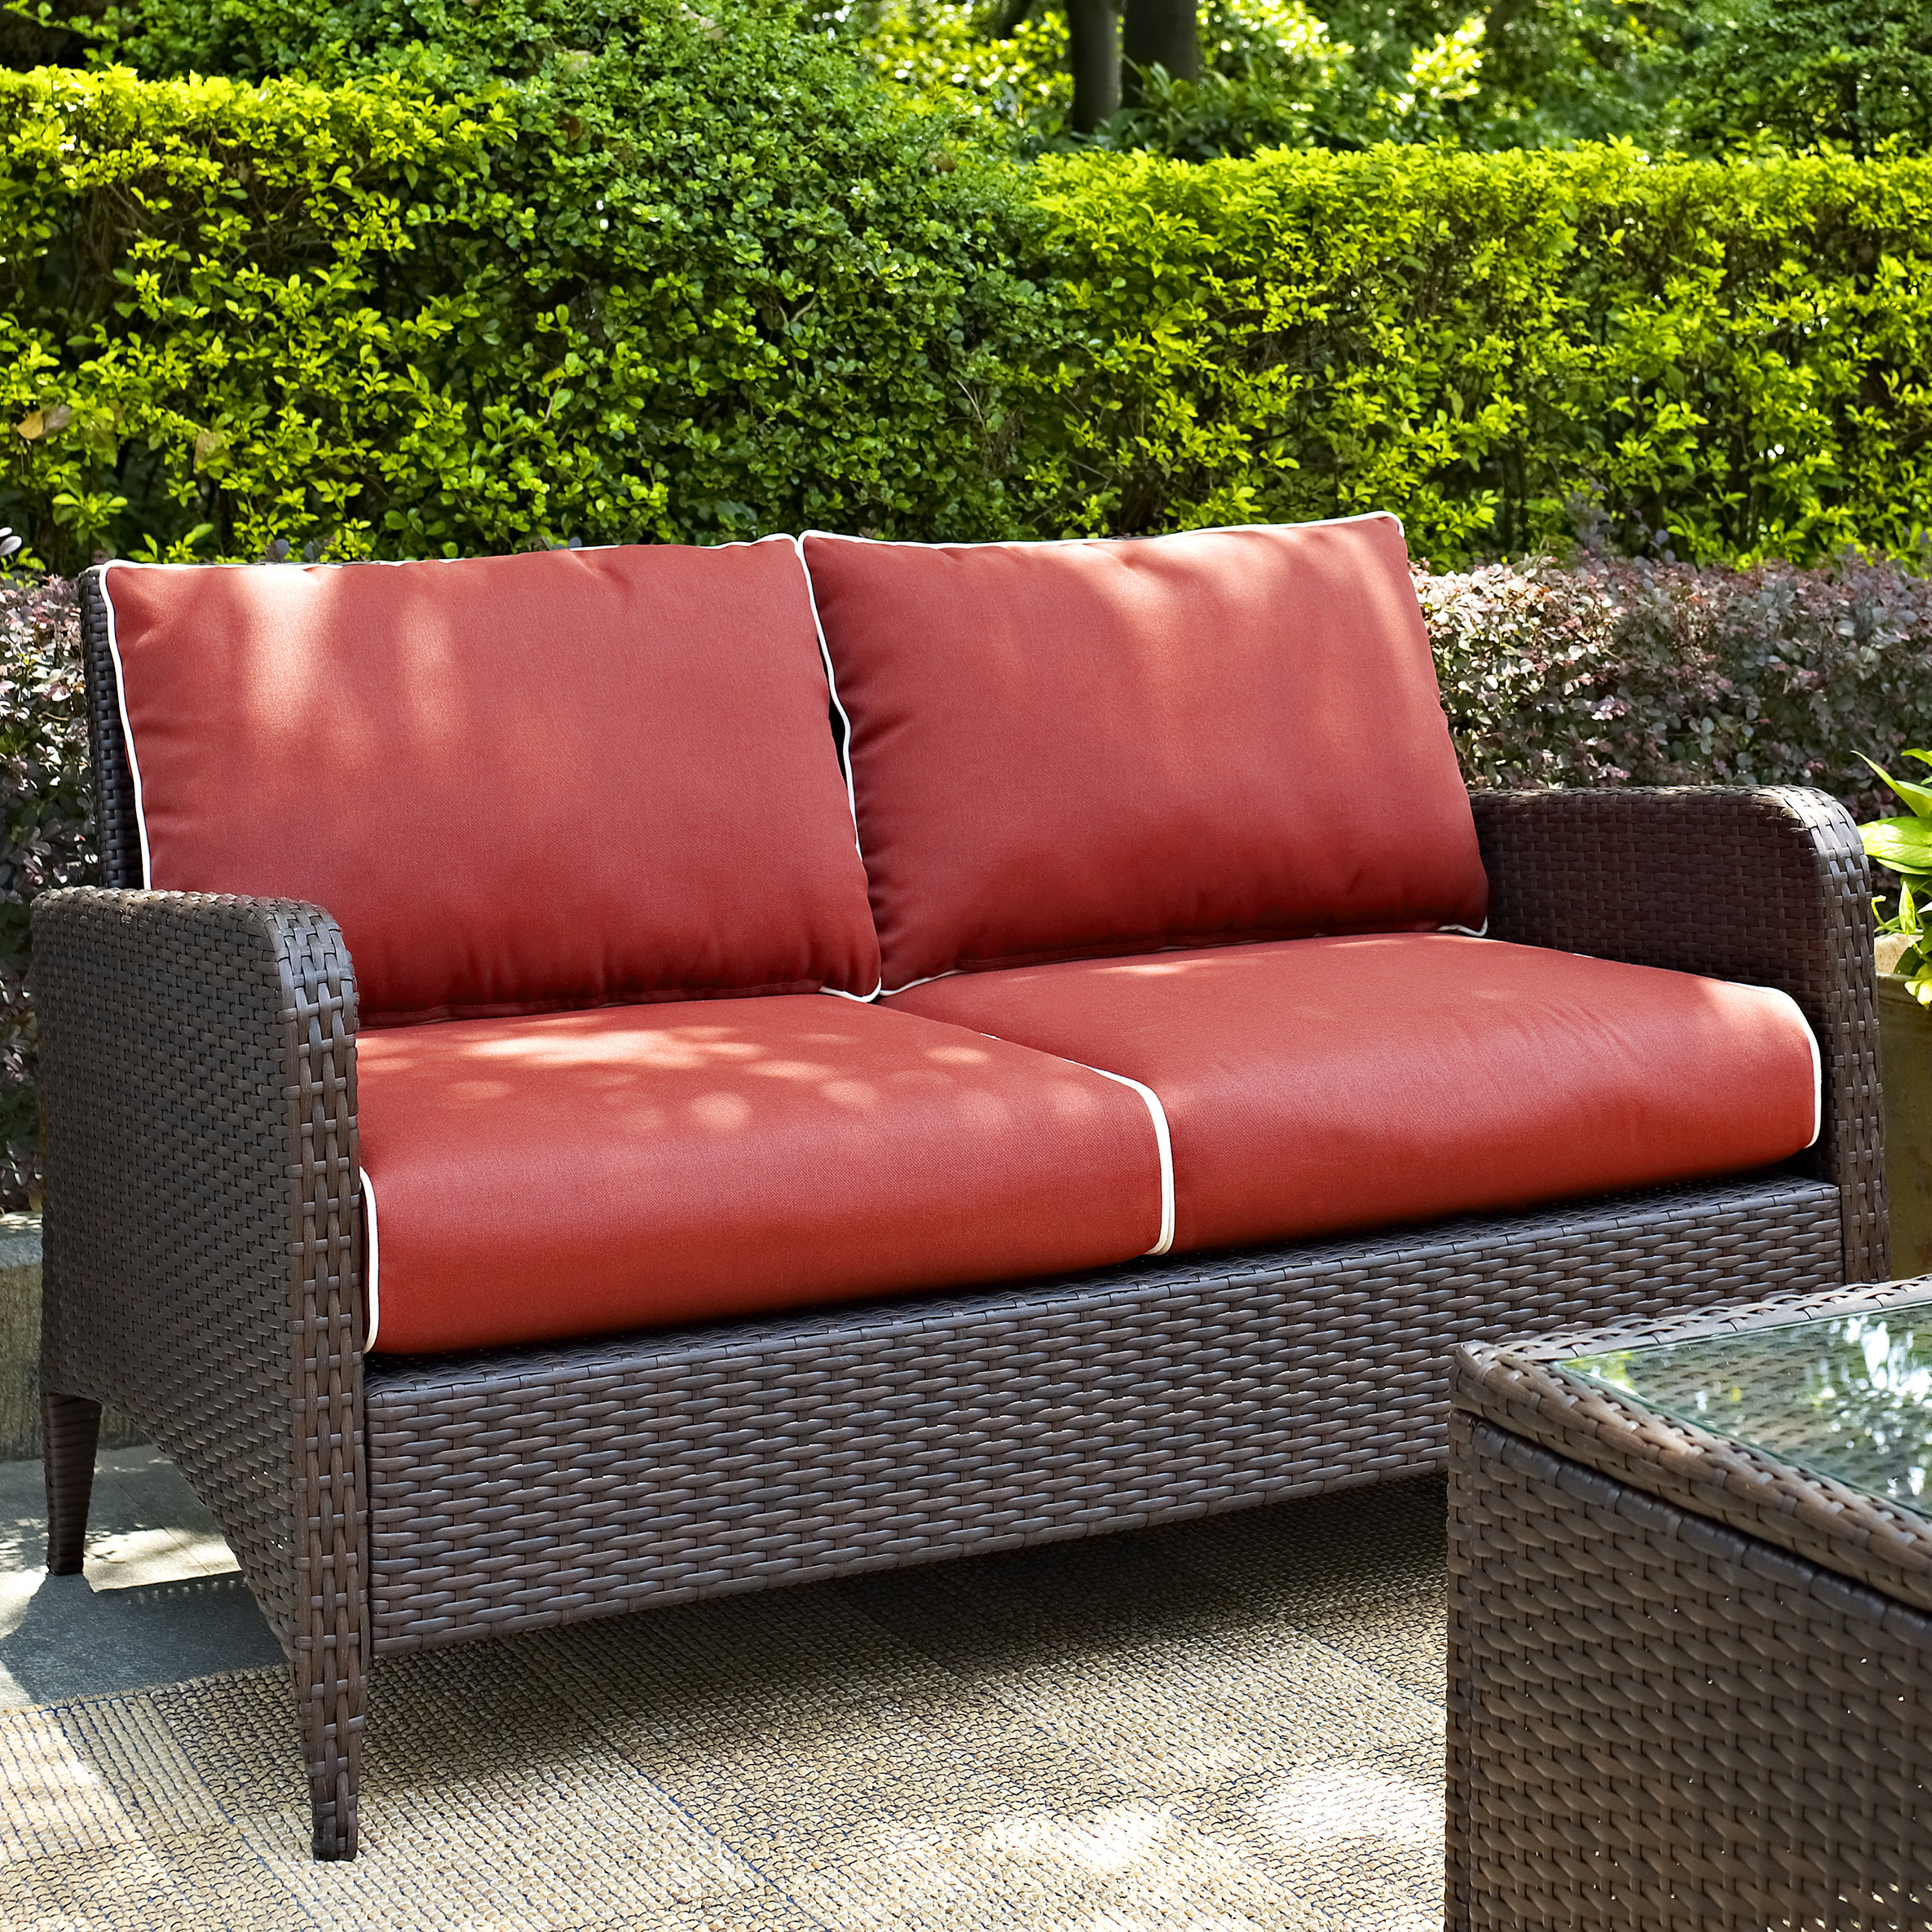 Mosca Patio Loveseat With Cushions Within Latest Camak Patio Loveseats With Cushions (View 11 of 20)